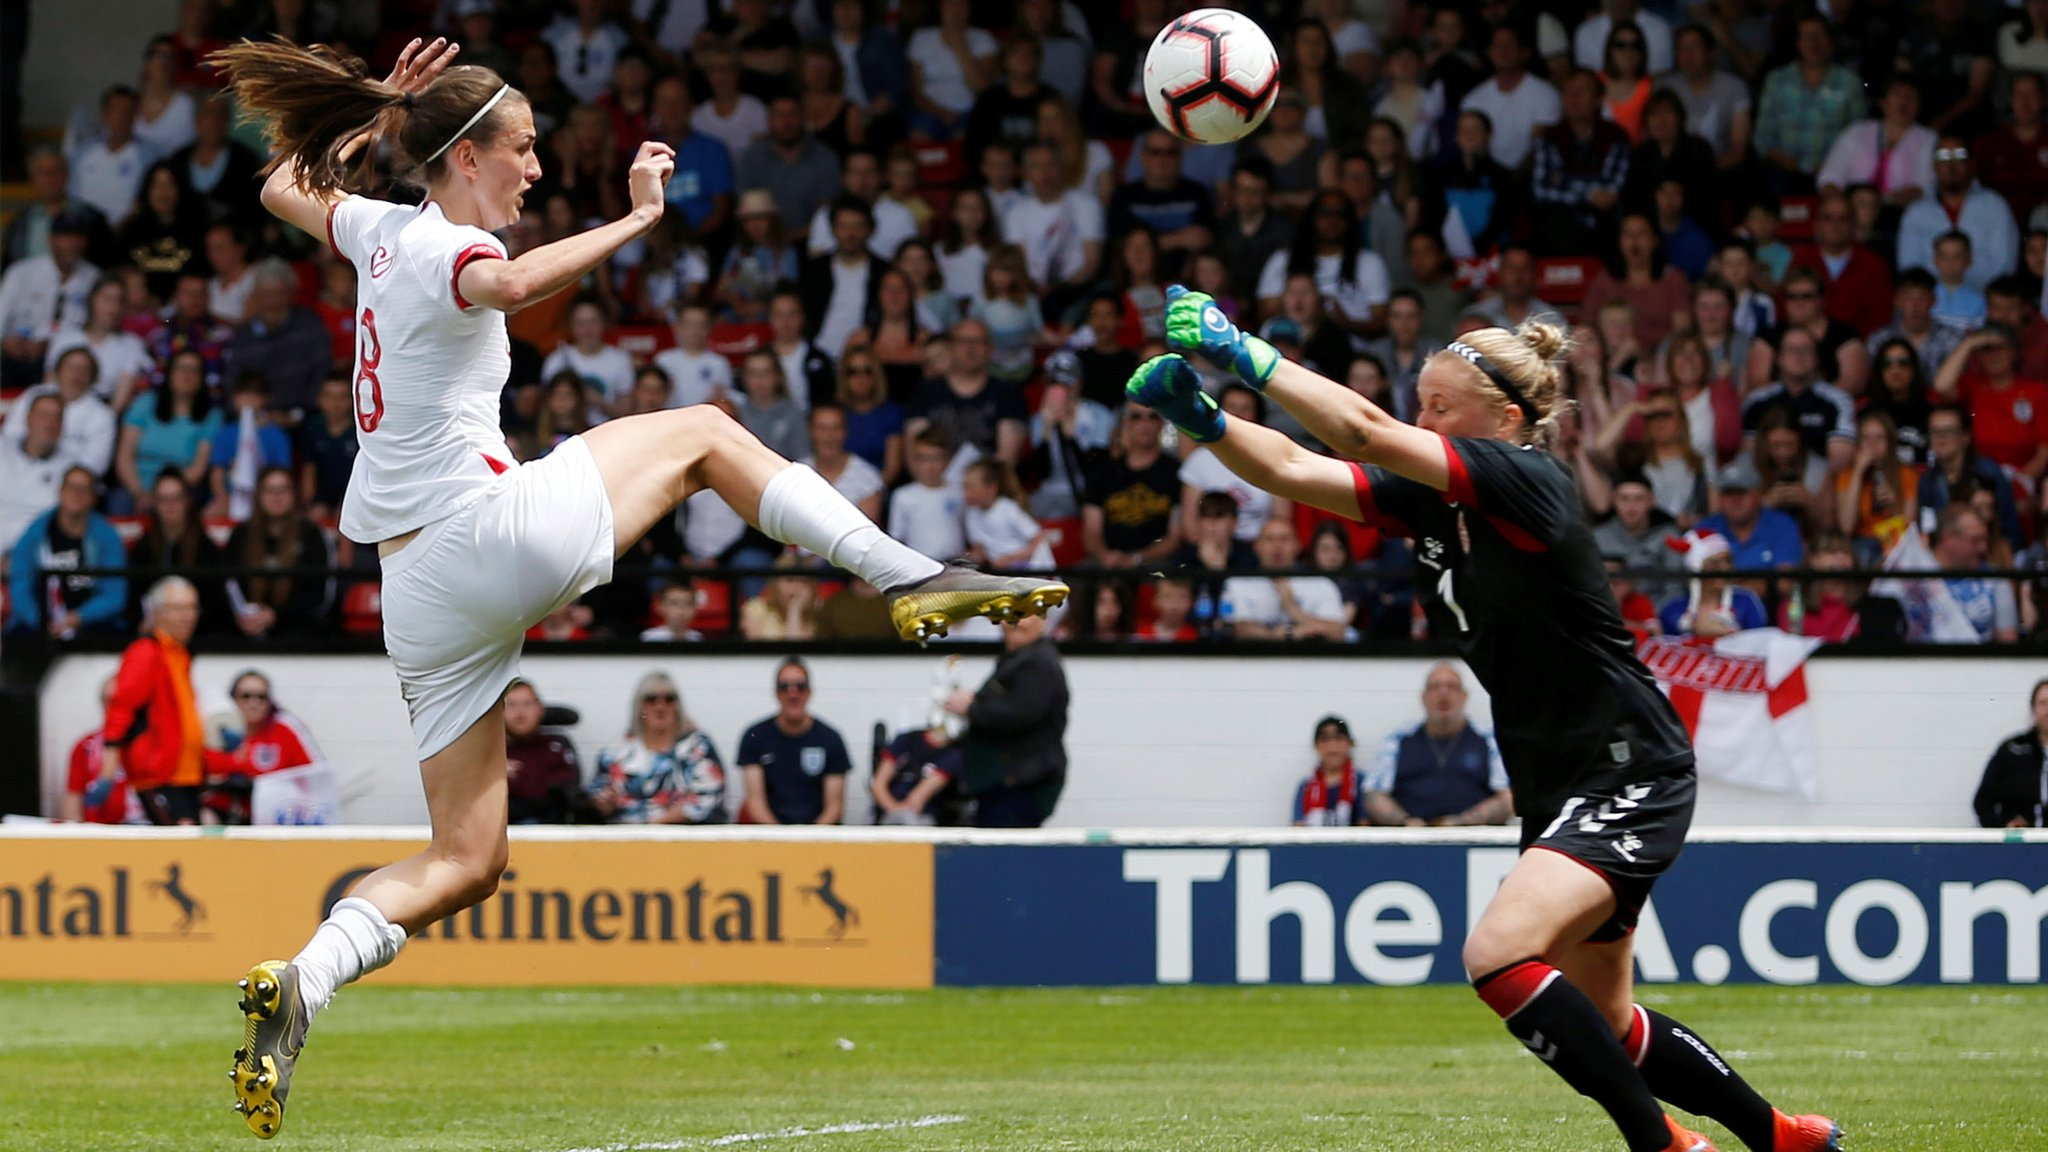 Marines training contributed to 'messy' England women win - Neville